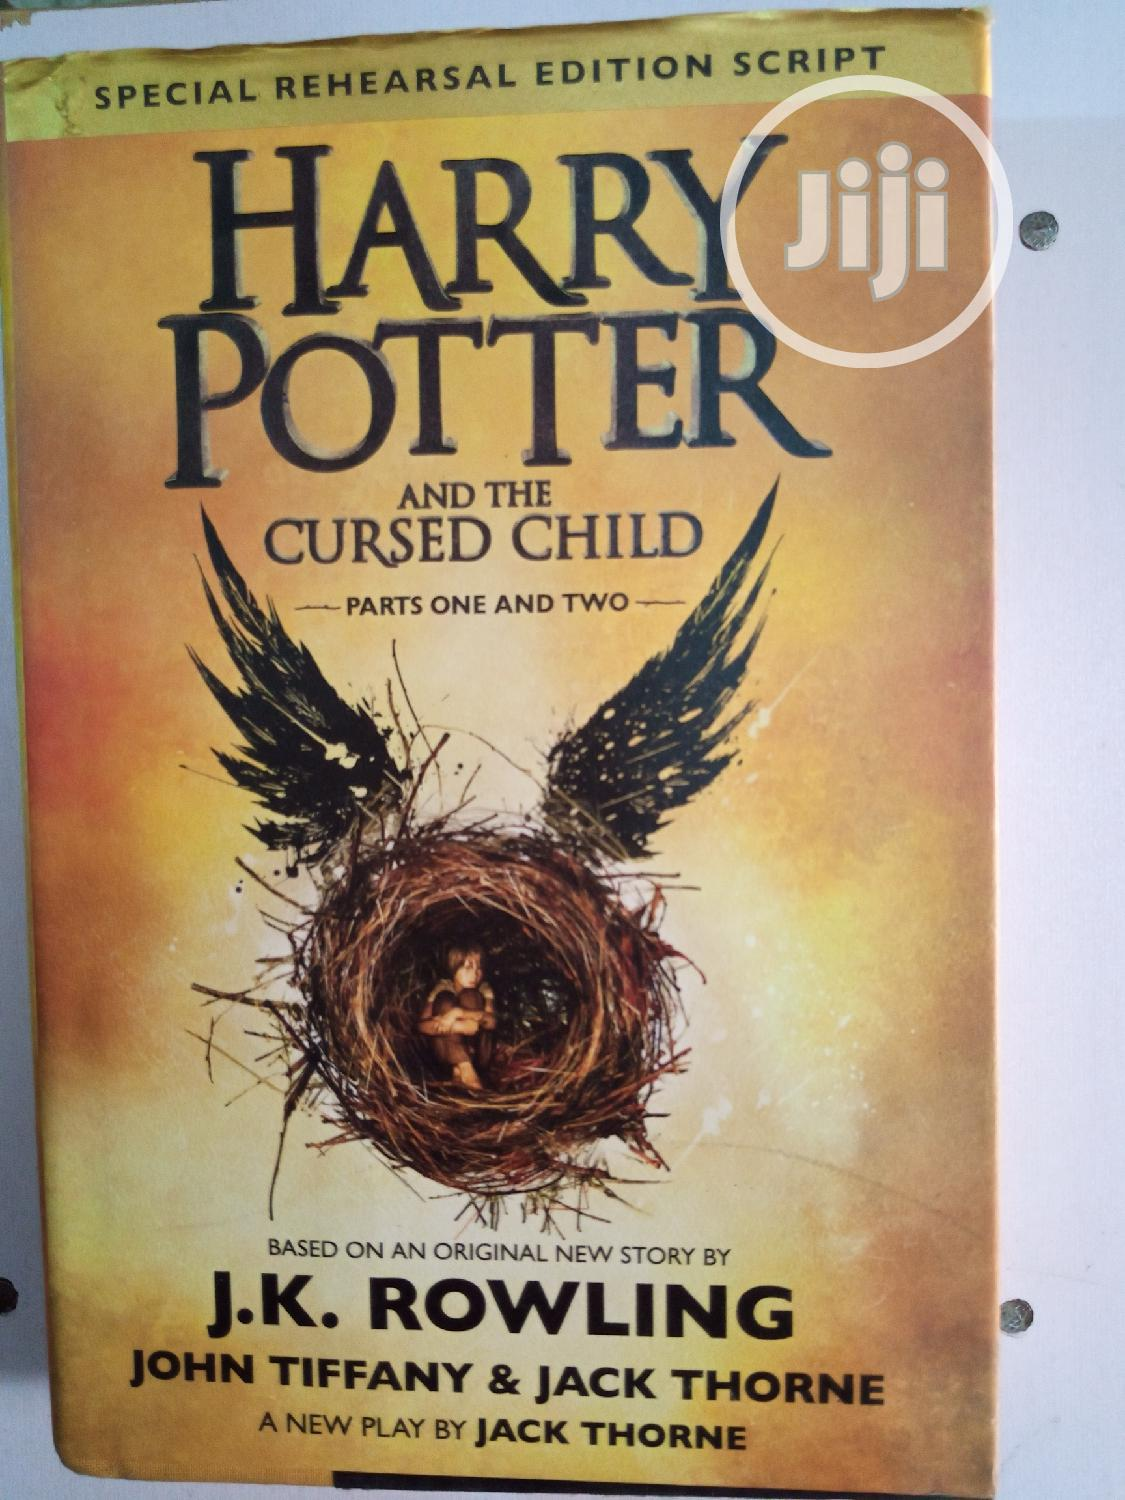 Harry Potter And The Cursed Child By J.K Rowling